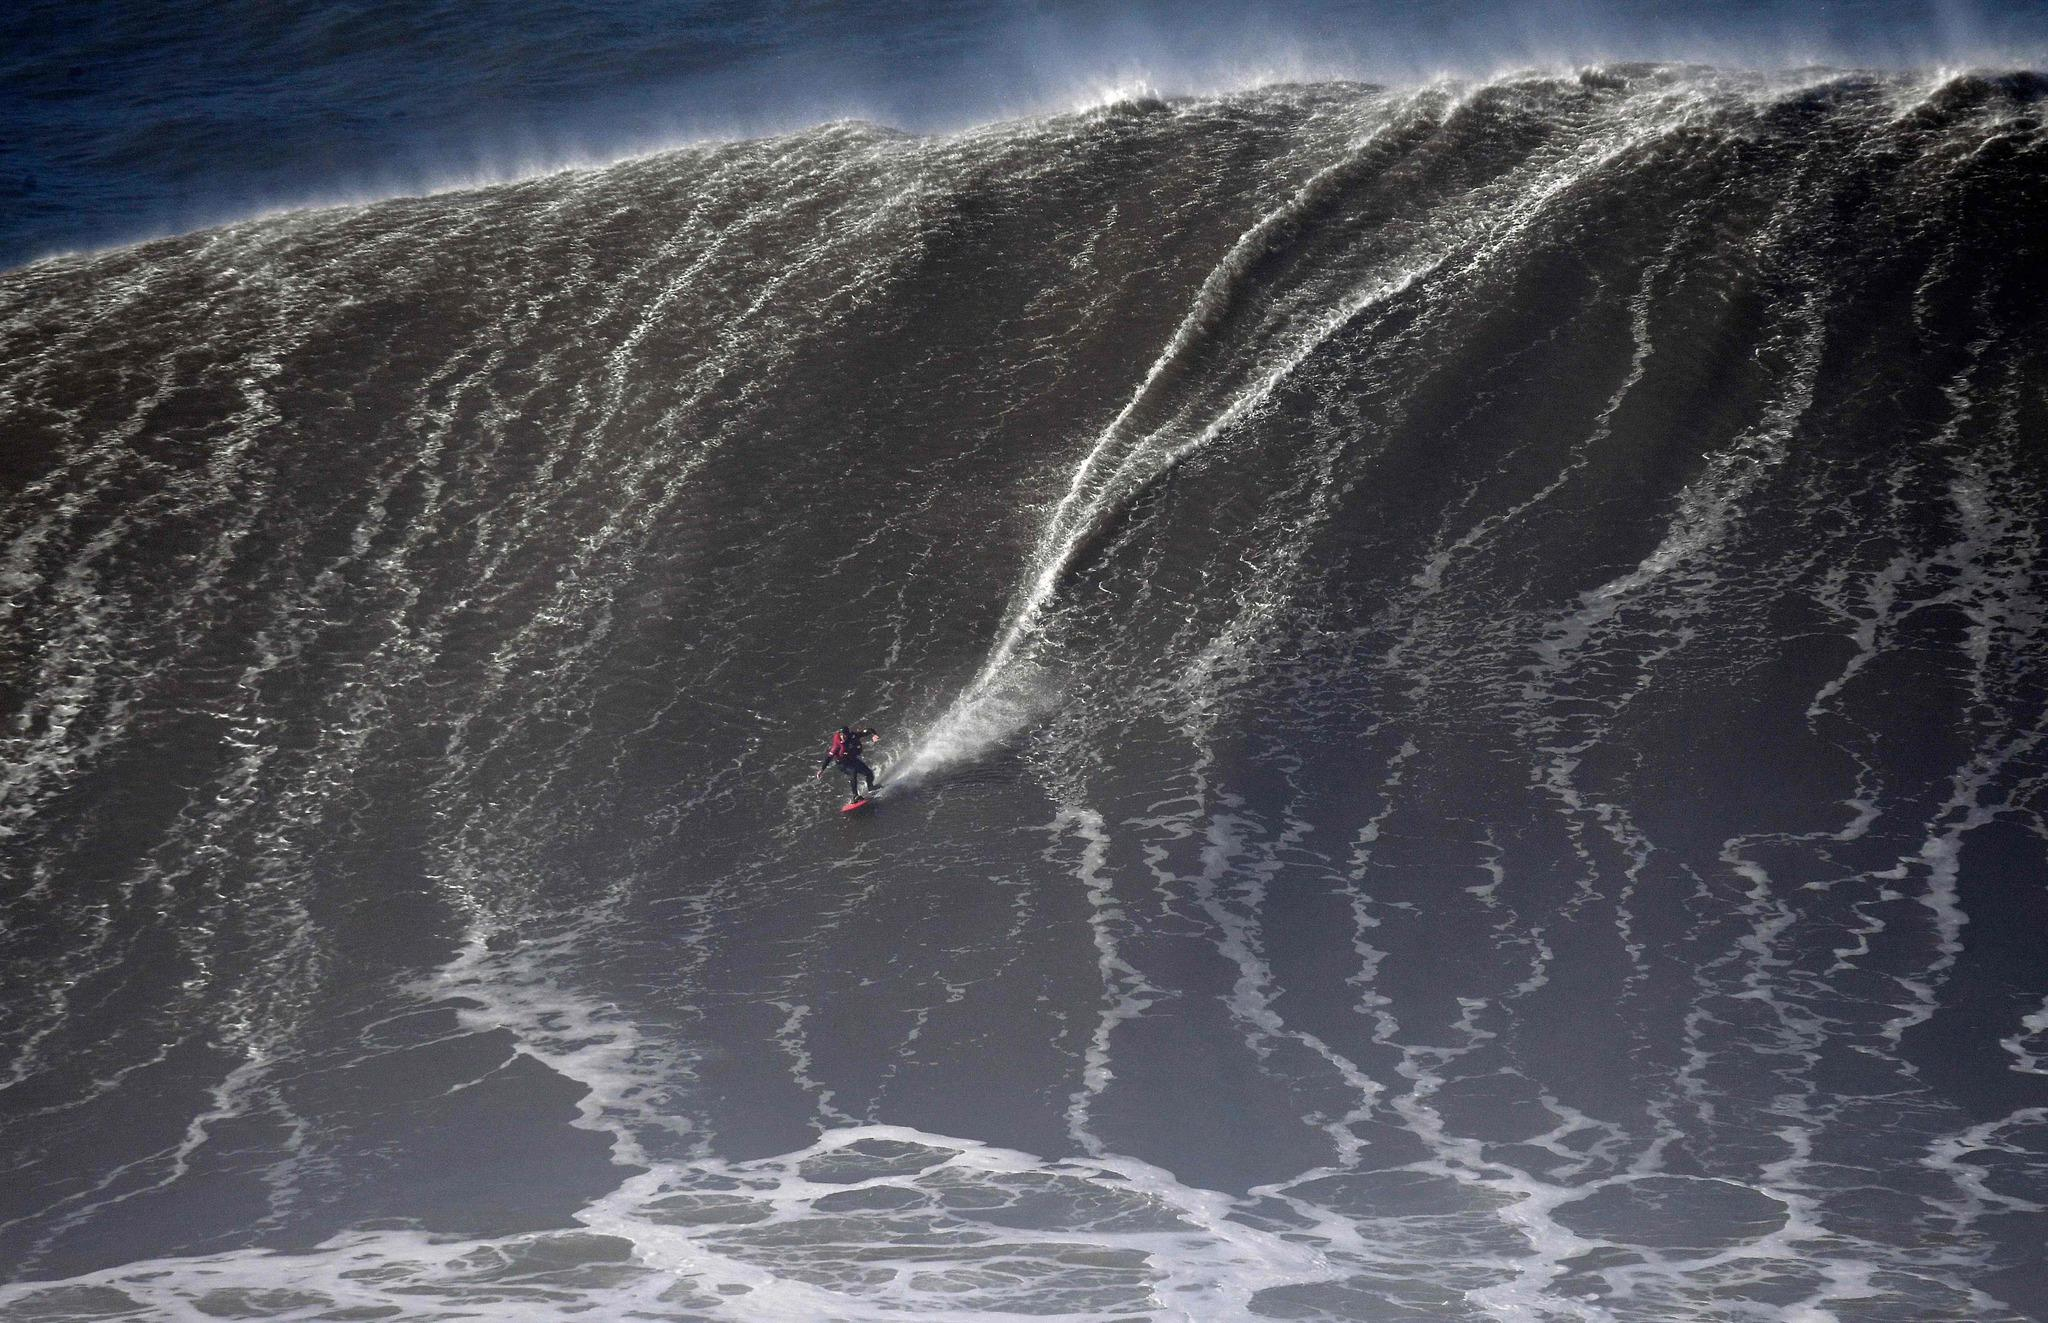 Big Wave Surfing In Portugal Los Angeles Times